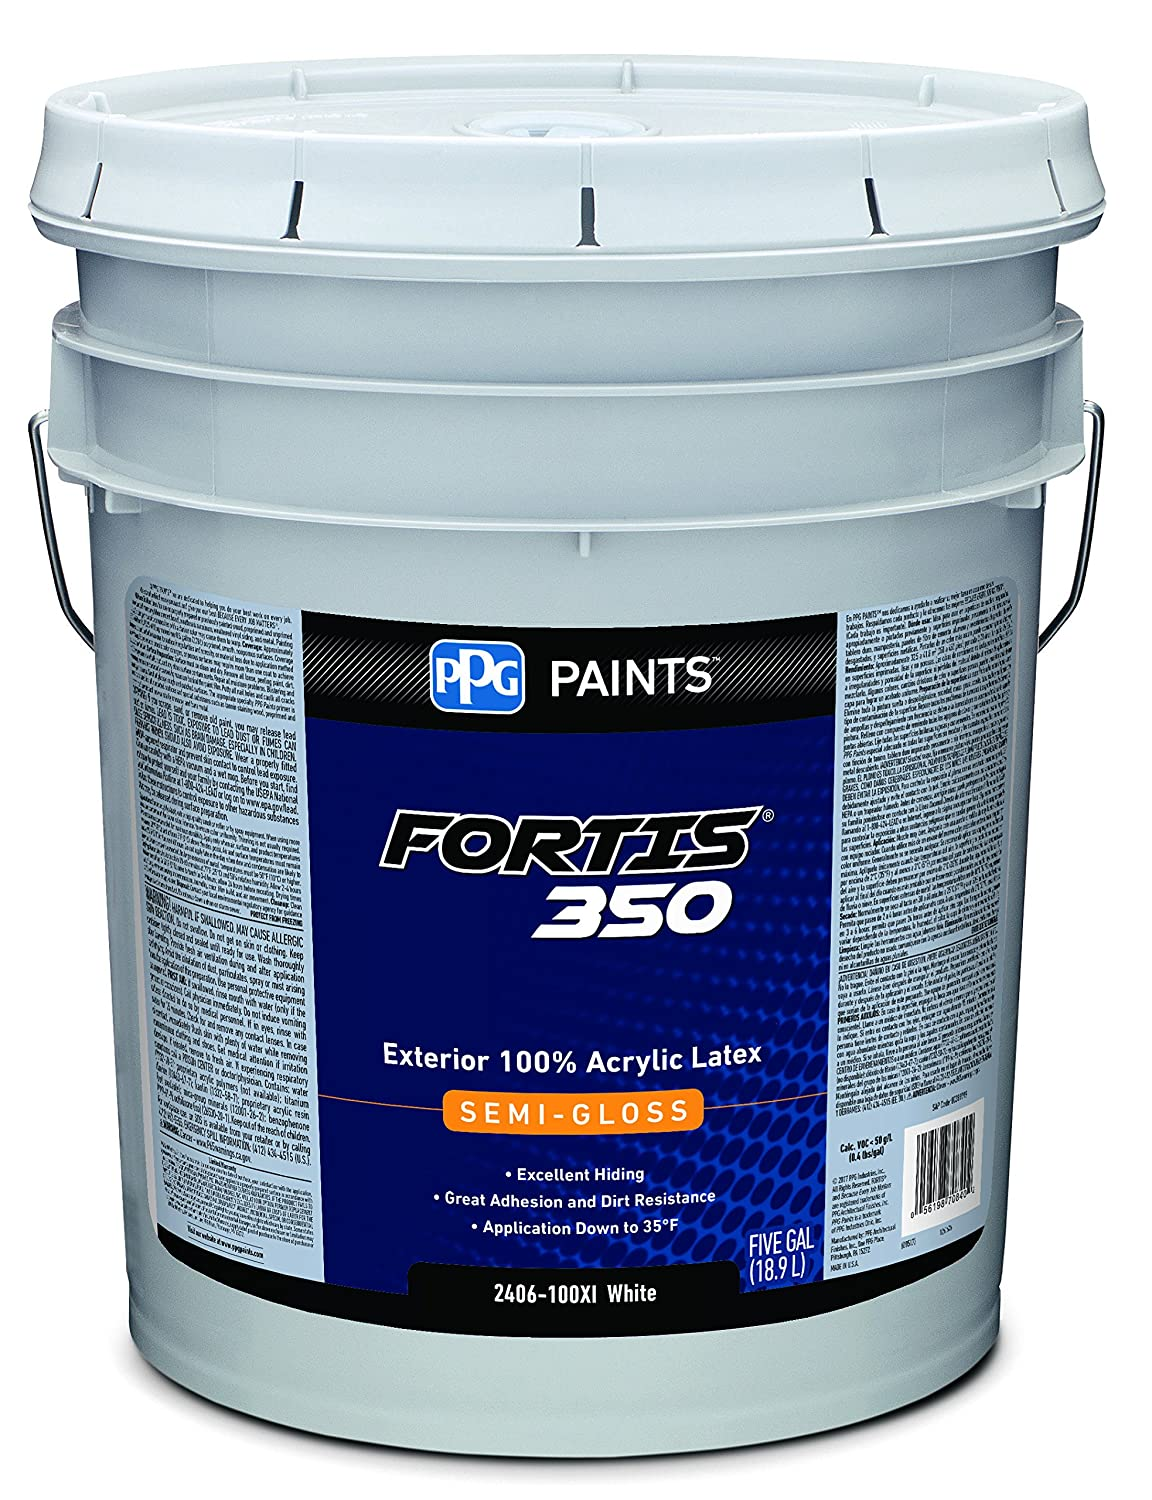 2406 100XI 05 Acrylic Paint Semi Gloss 5 gal Fortis 350 Exterior Paint White